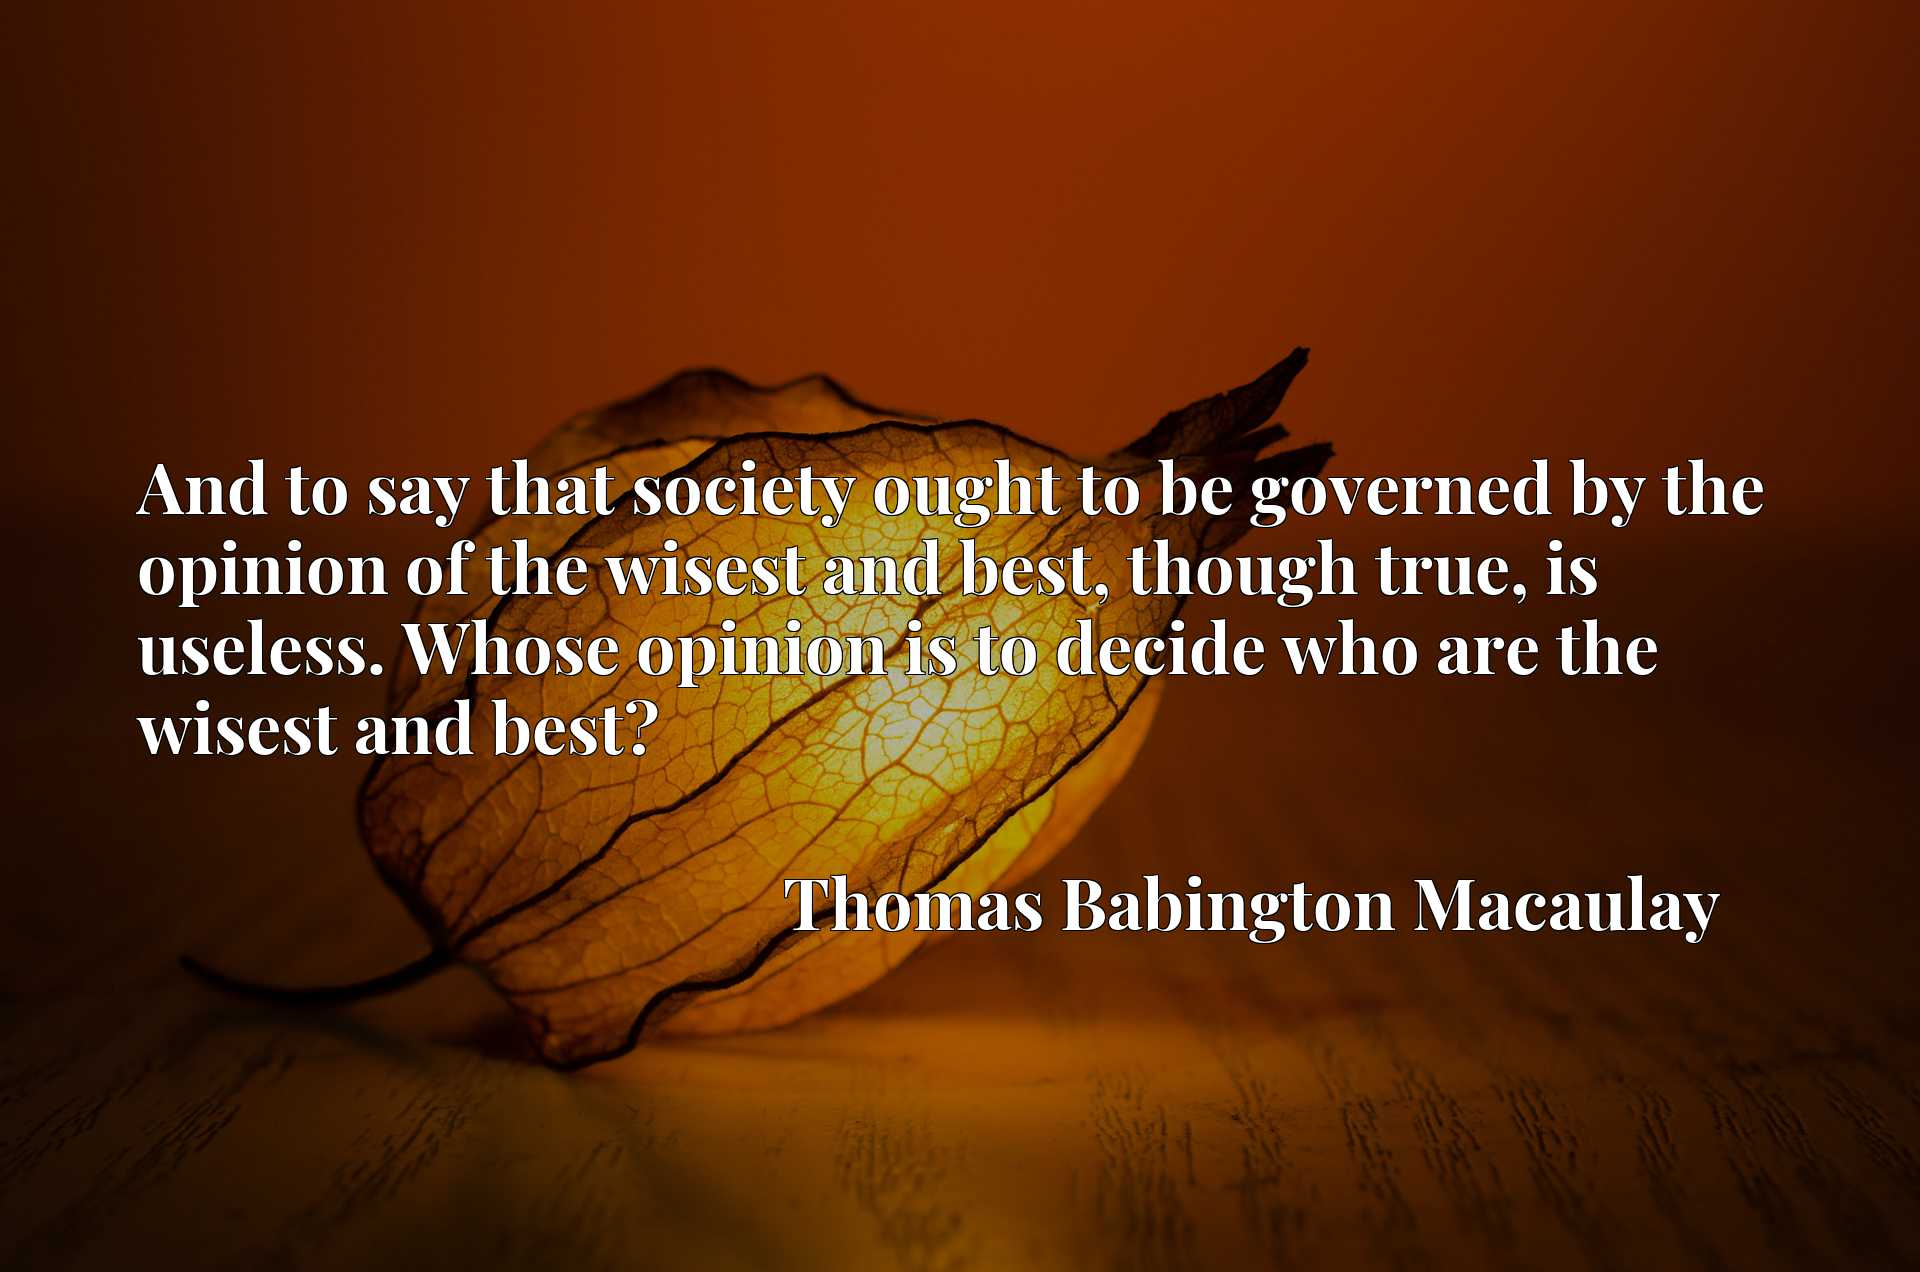 And to say that society ought to be governed by the opinion of the wisest and best, though true, is useless. Whose opinion is to decide who are the wisest and best?